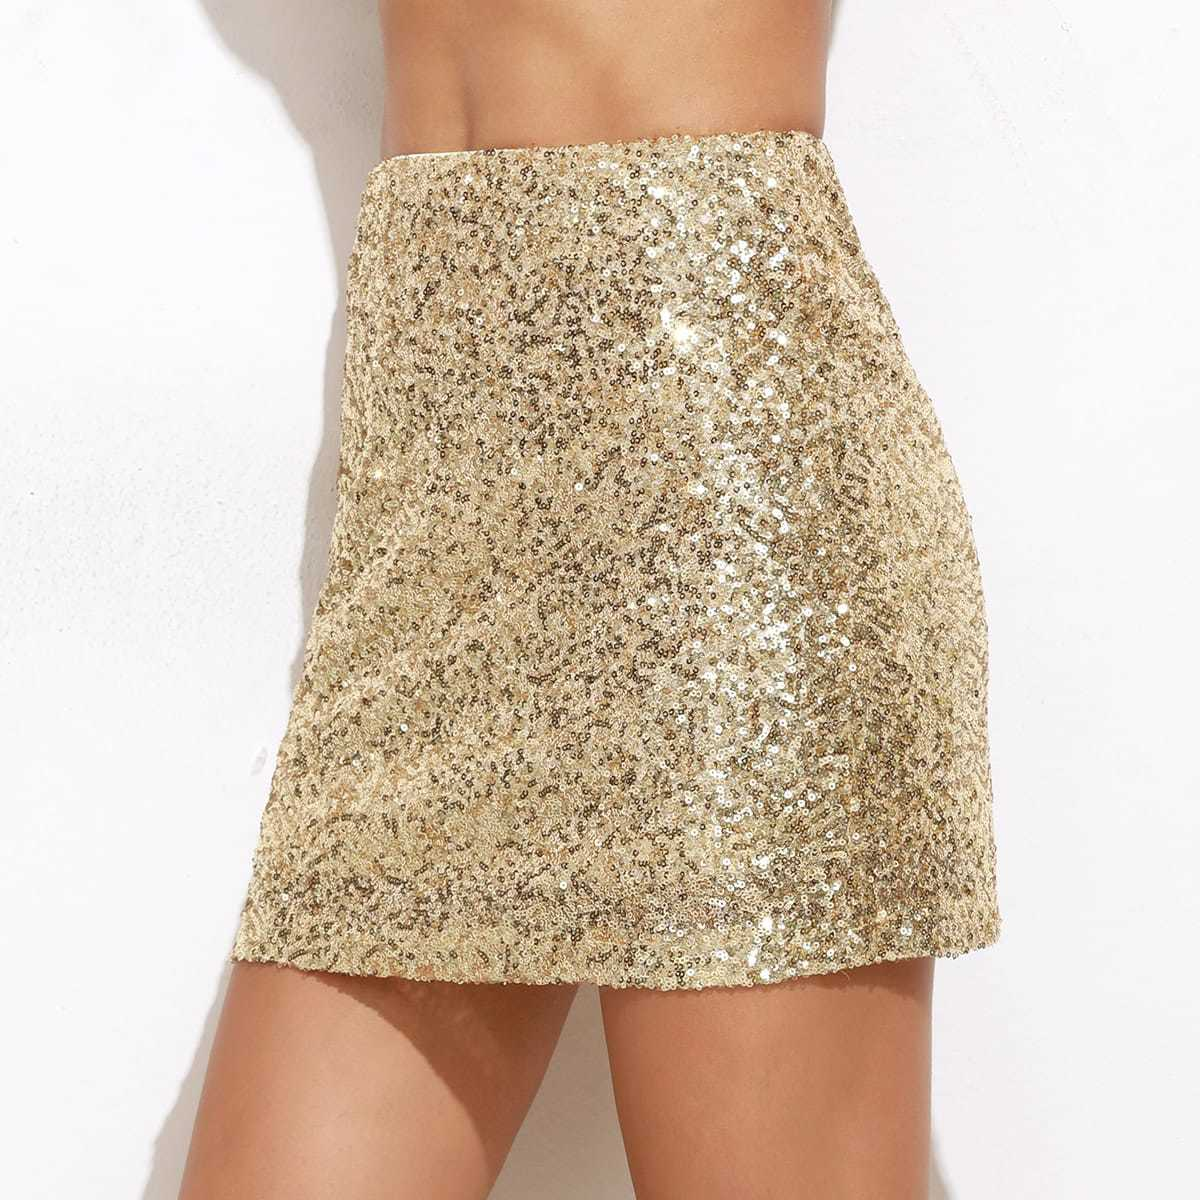 Embroidered Sequin Mini Skirt in Gold by ROMWE on GOOFASH